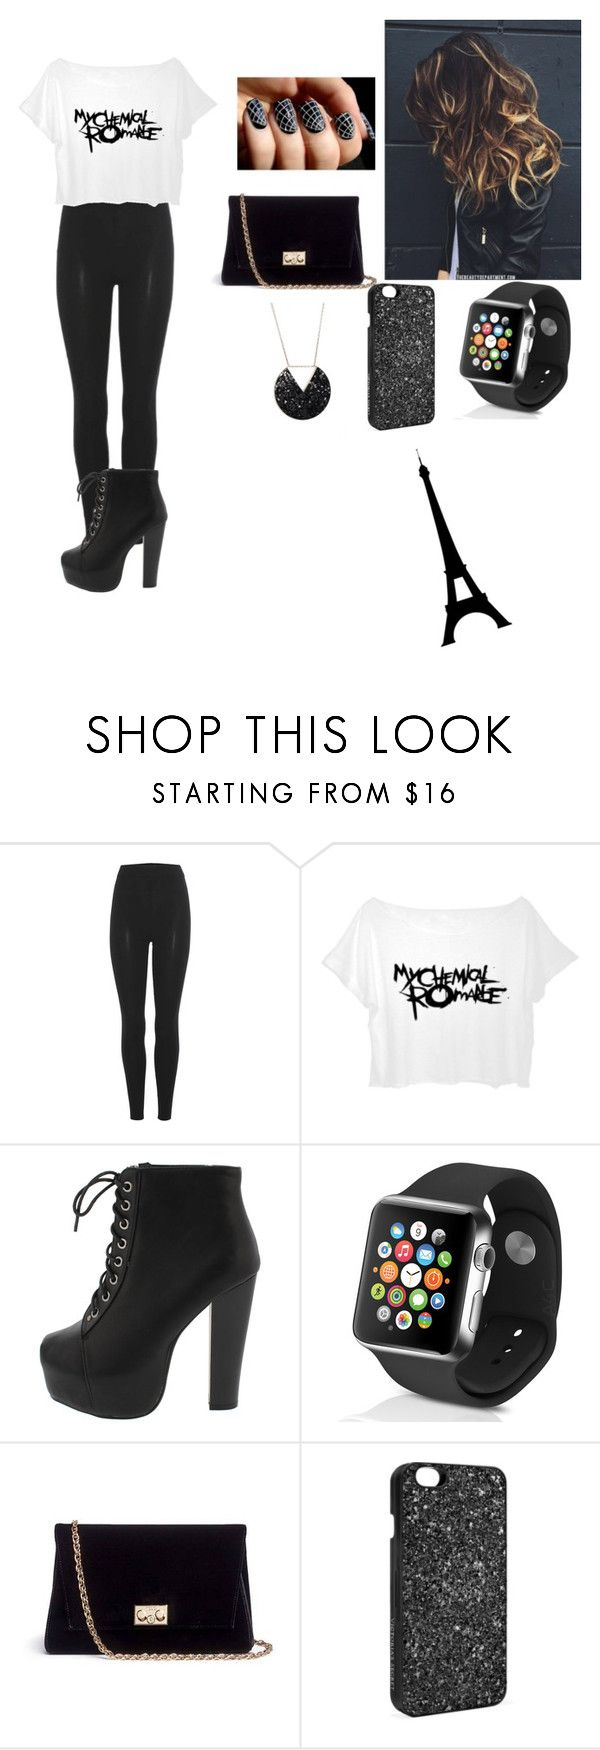 """Untitled #90"" by manaldadssi ❤ liked on Polyvore featuring adidas Originals, Apple, Rodo and Victoria's Secret"